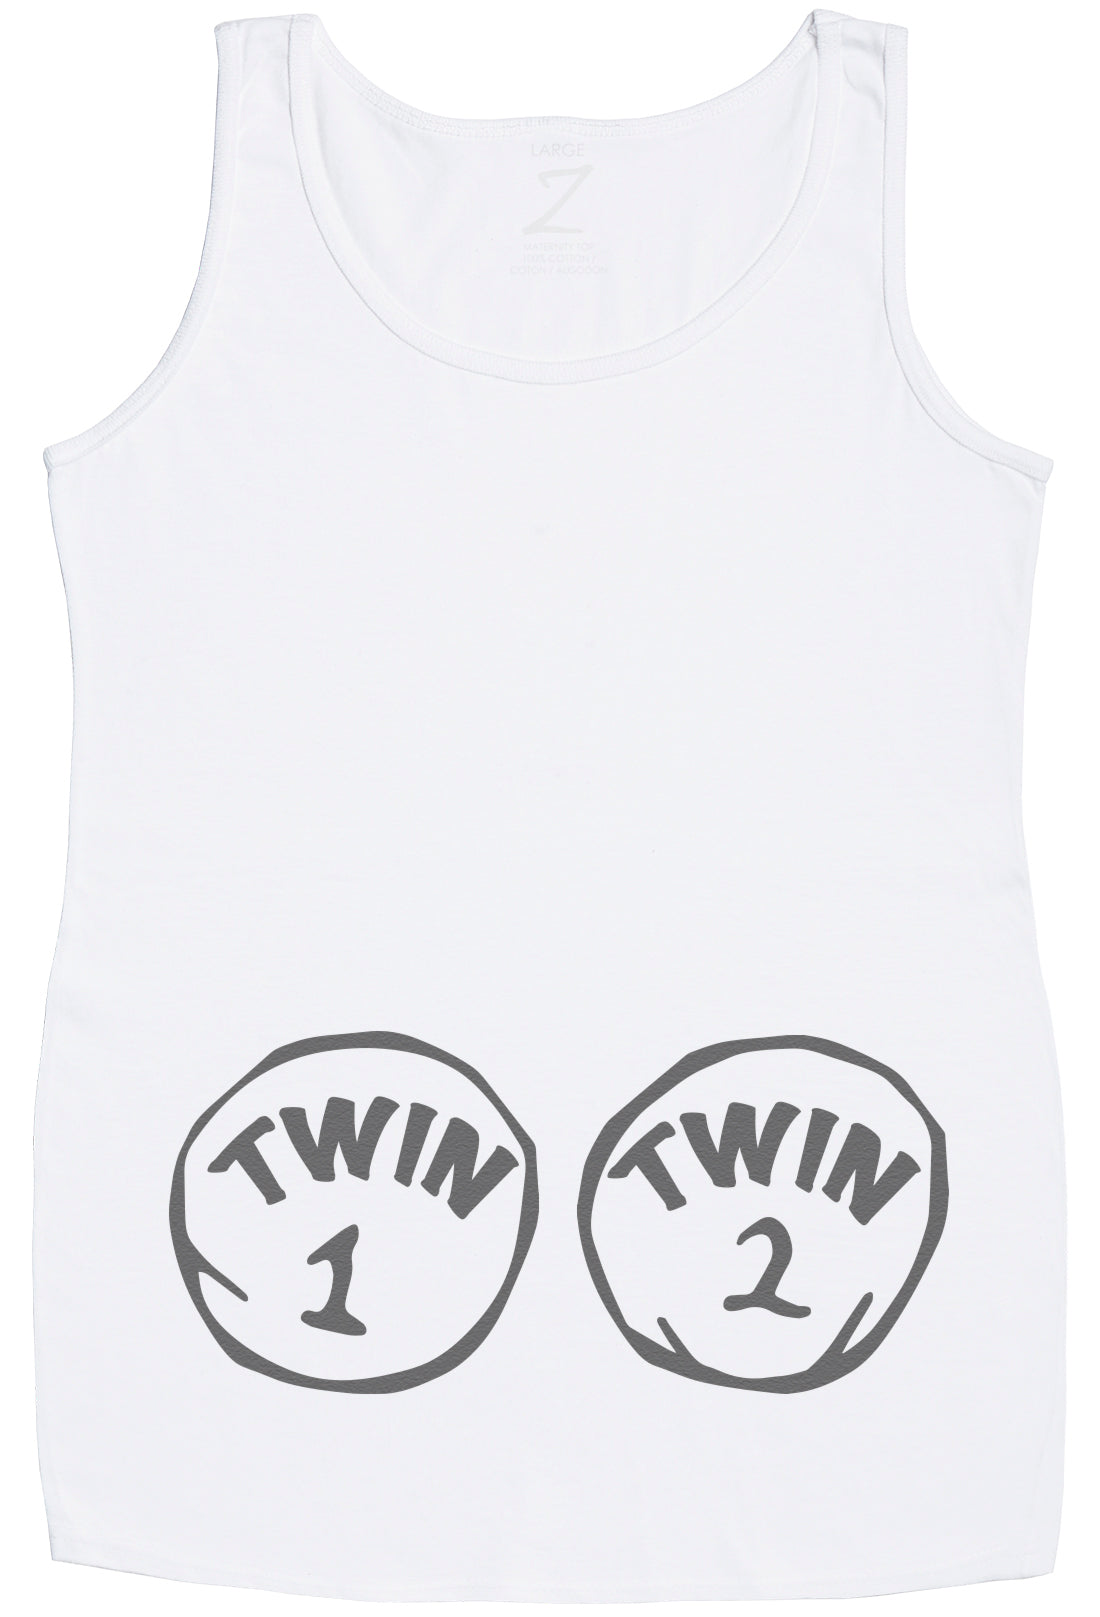 4cf2ea159cf44 Twin 1 Twin 2 Maternity Vest Top - Maternity Clothing - Maternity Gift -  Gift for Mum To Be - White